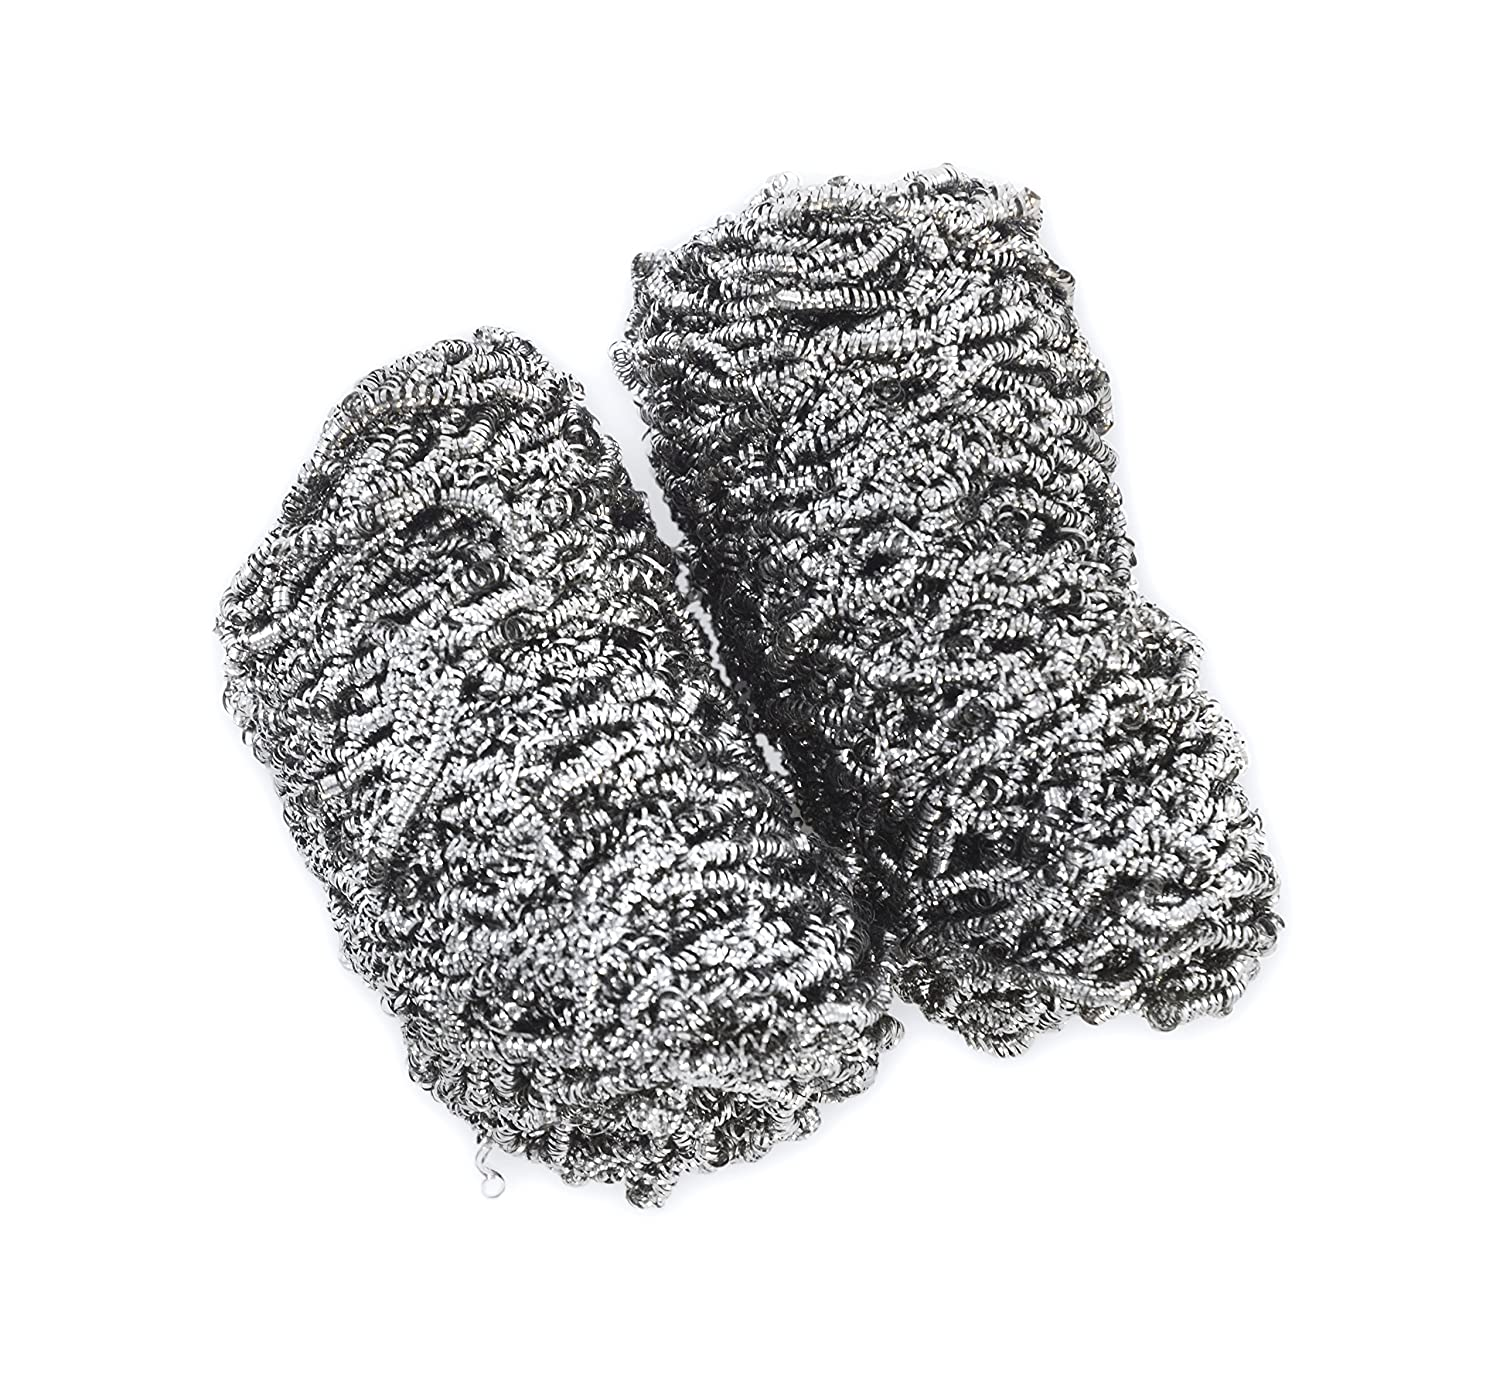 Charcoal Companion CC4105 Stainless Grill Ware Scrubbers - Silver (Set of 2) The Companion Group